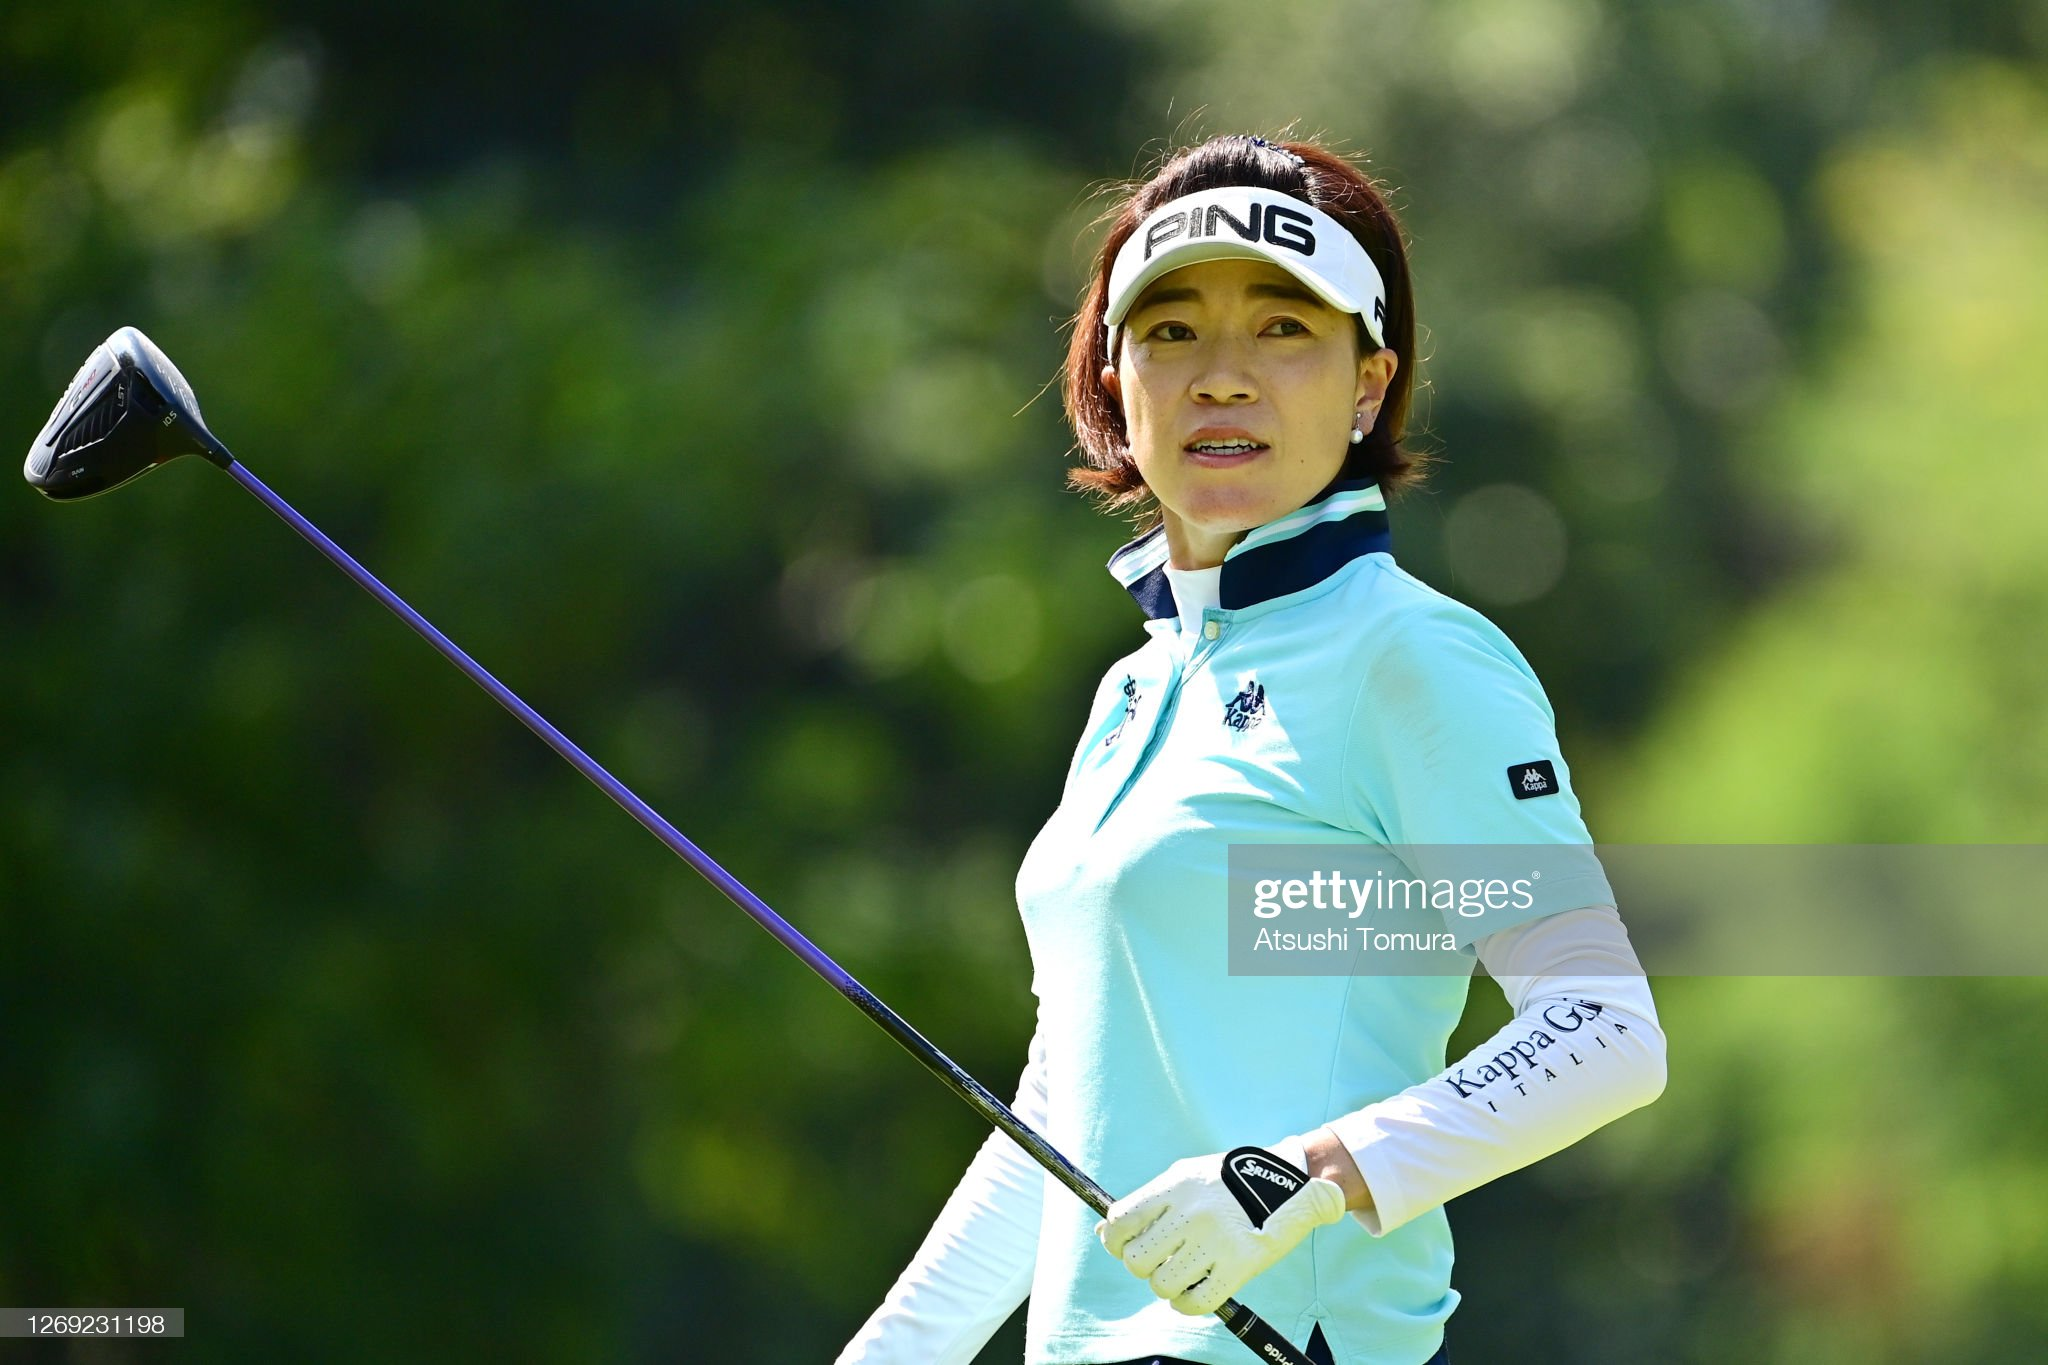 https://media.gettyimages.com/photos/shiho-oyama-of-japan-is-seen-on-the-5th-tee-during-the-second-round-picture-id1269231198?s=2048x2048